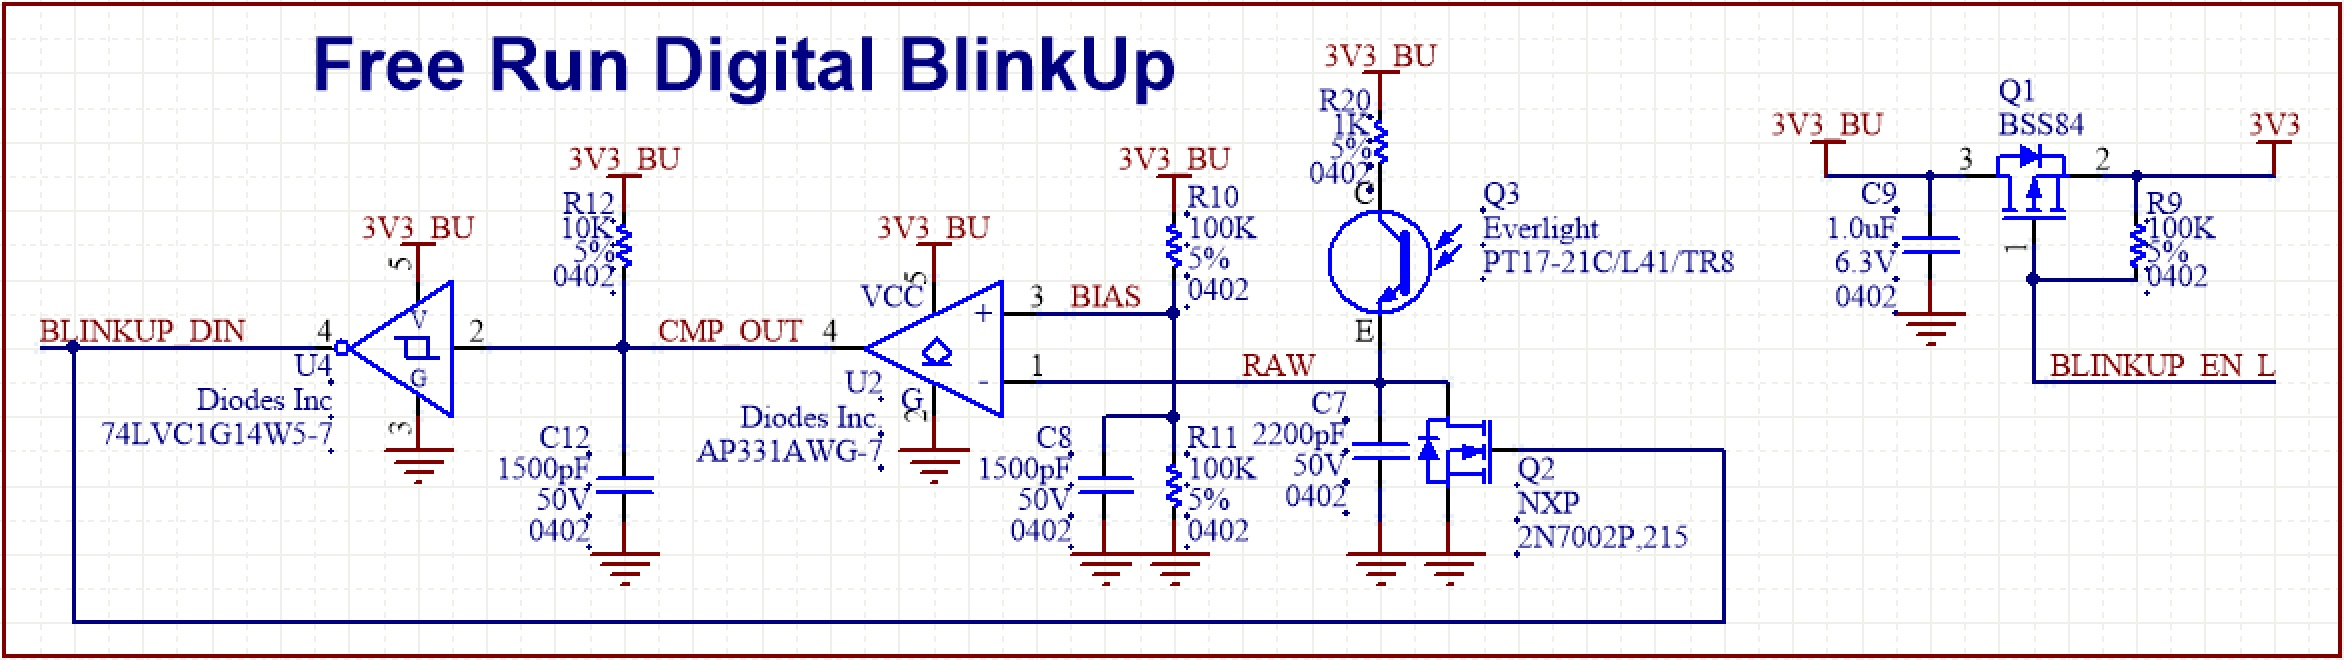 Design Hardware With The Imp005 Dev Center Circuit Led Flasher Universal 3v Circuits Designed By Blinkup Ramp Adc